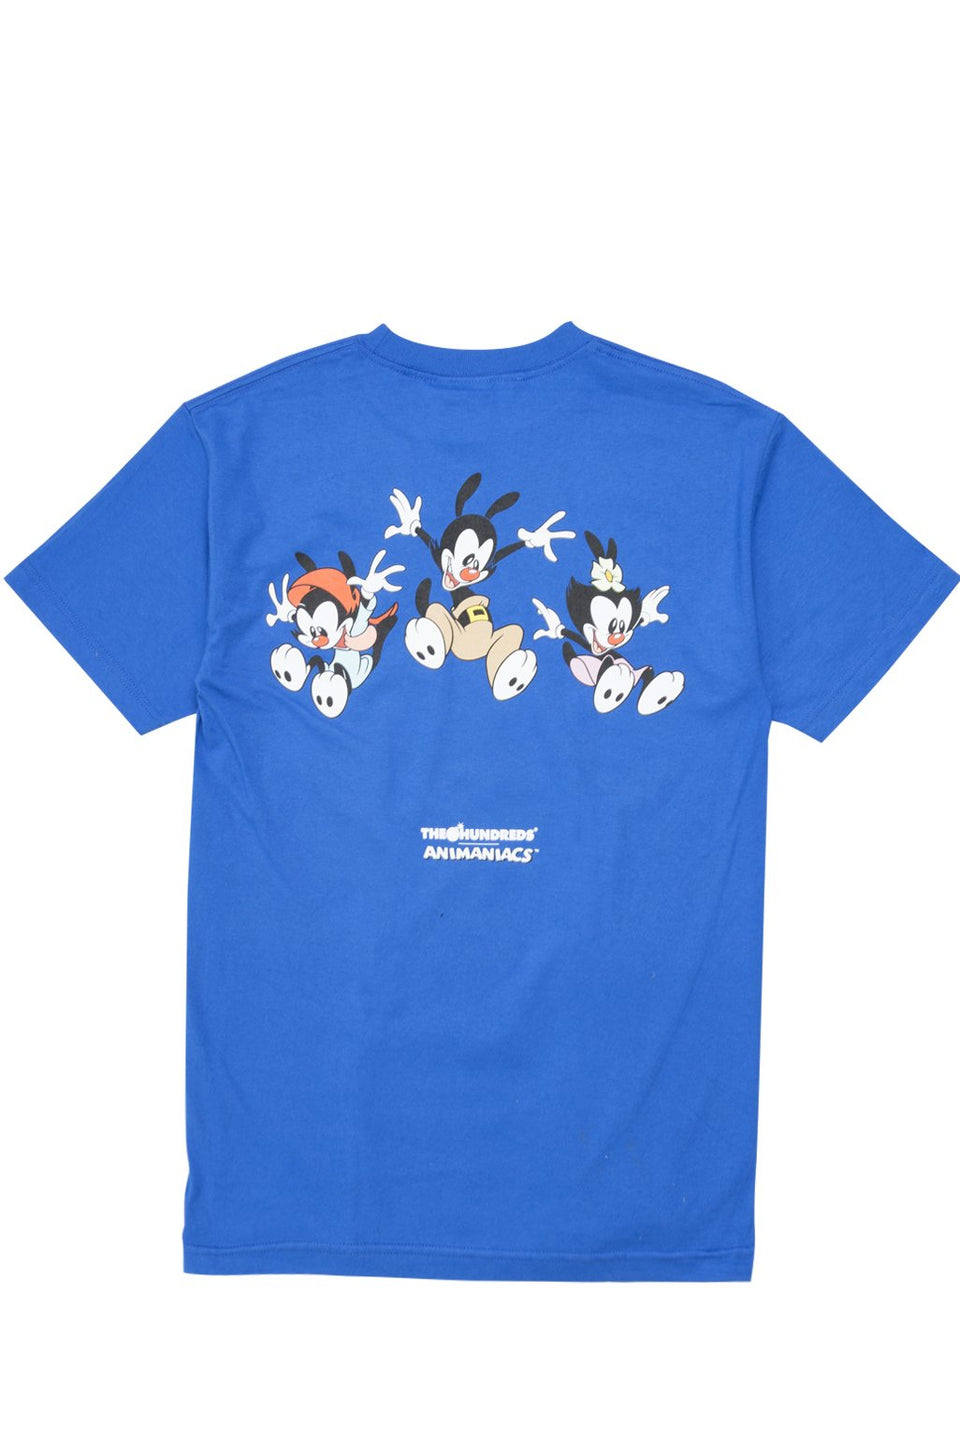 Animaniacs Falling T-Shirt